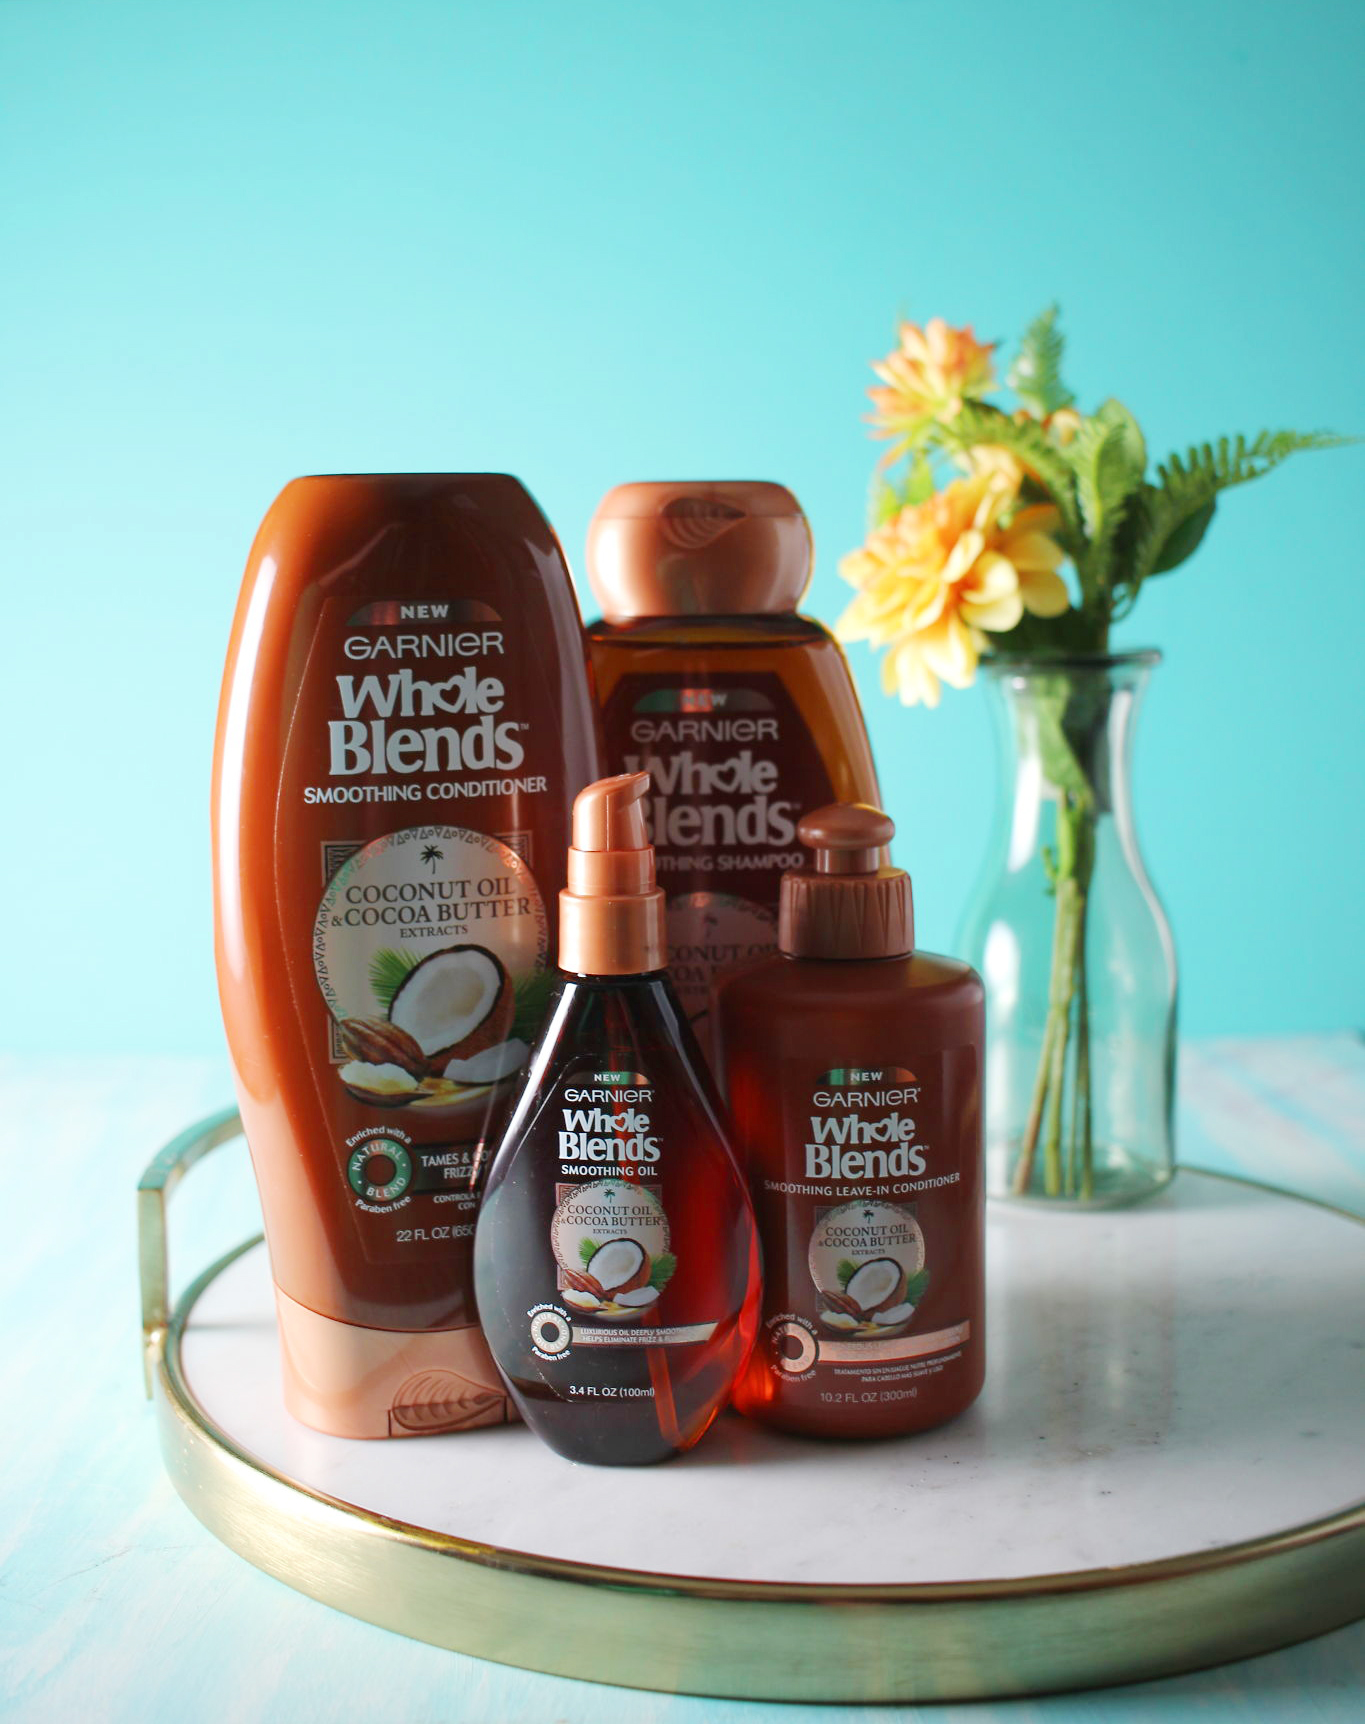 Garnier Whole Blends Smoothing Line